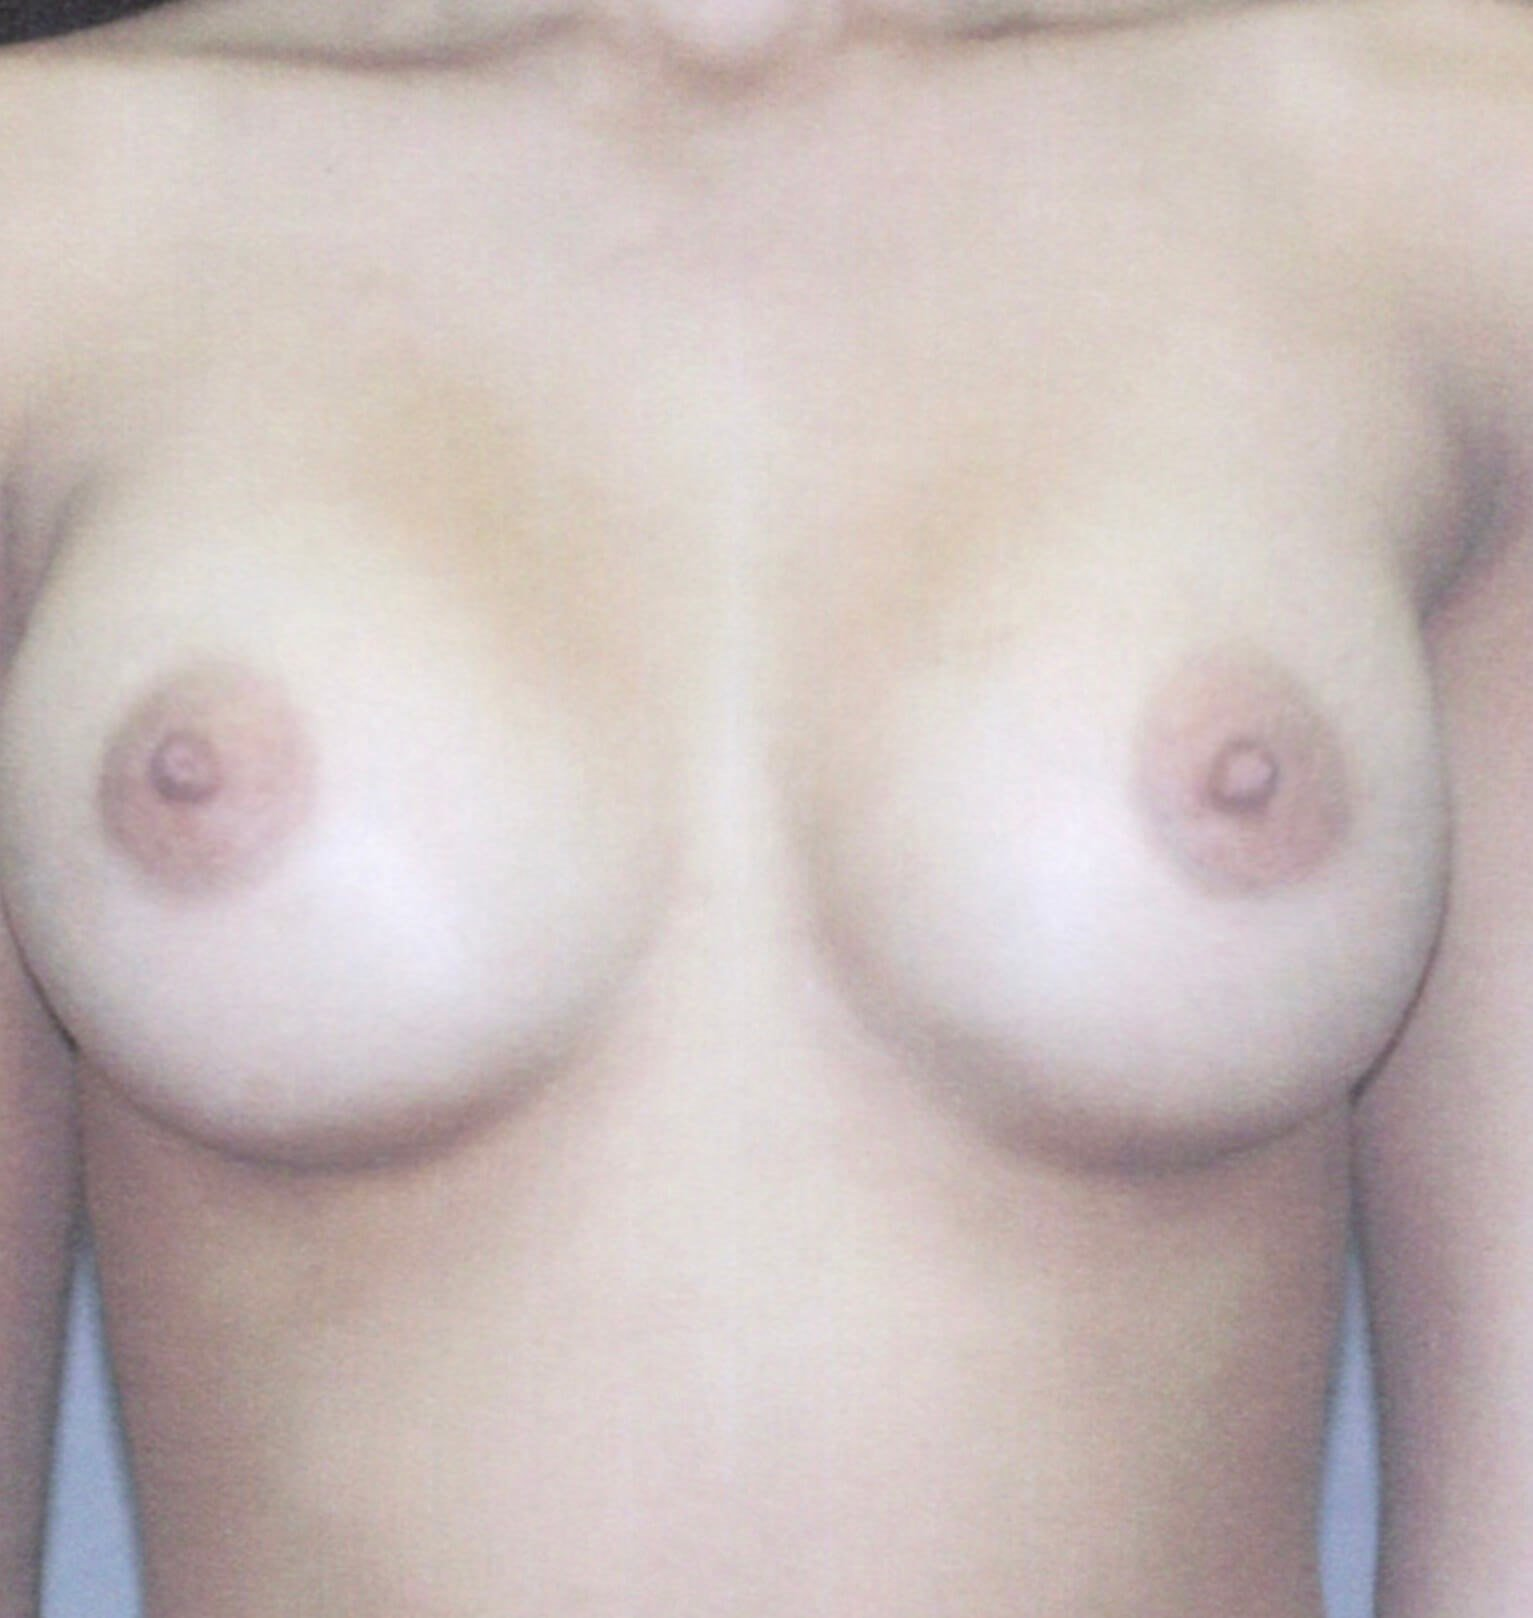 Front View Breast Augmentation 3 Months After